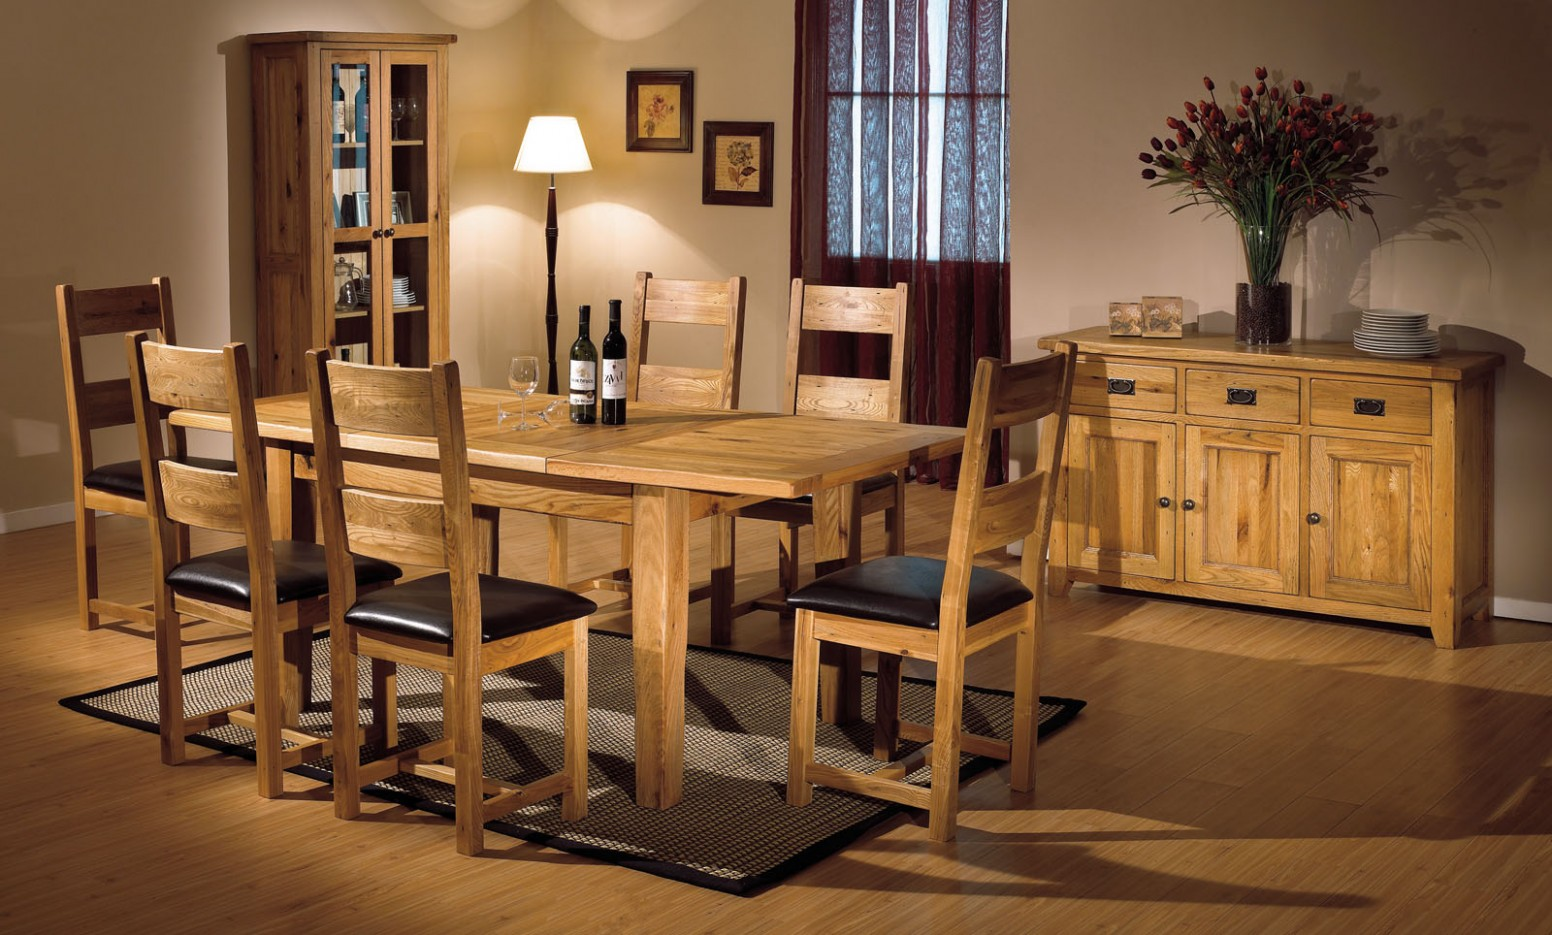 oak furniture for dining room  Dreamehome - Dining Room Ideas Oak Table